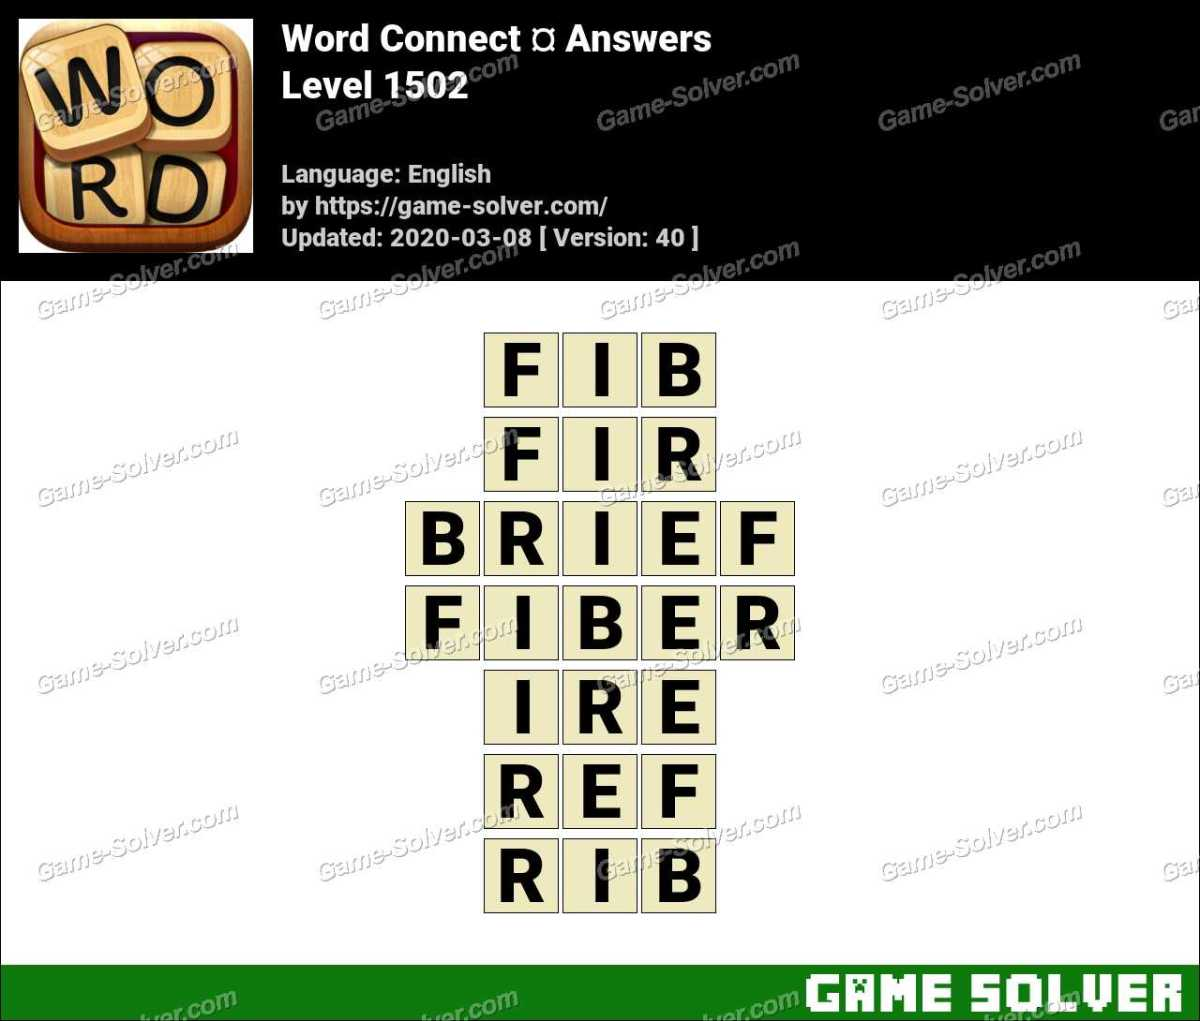 Word Connect Level 1502 Answers